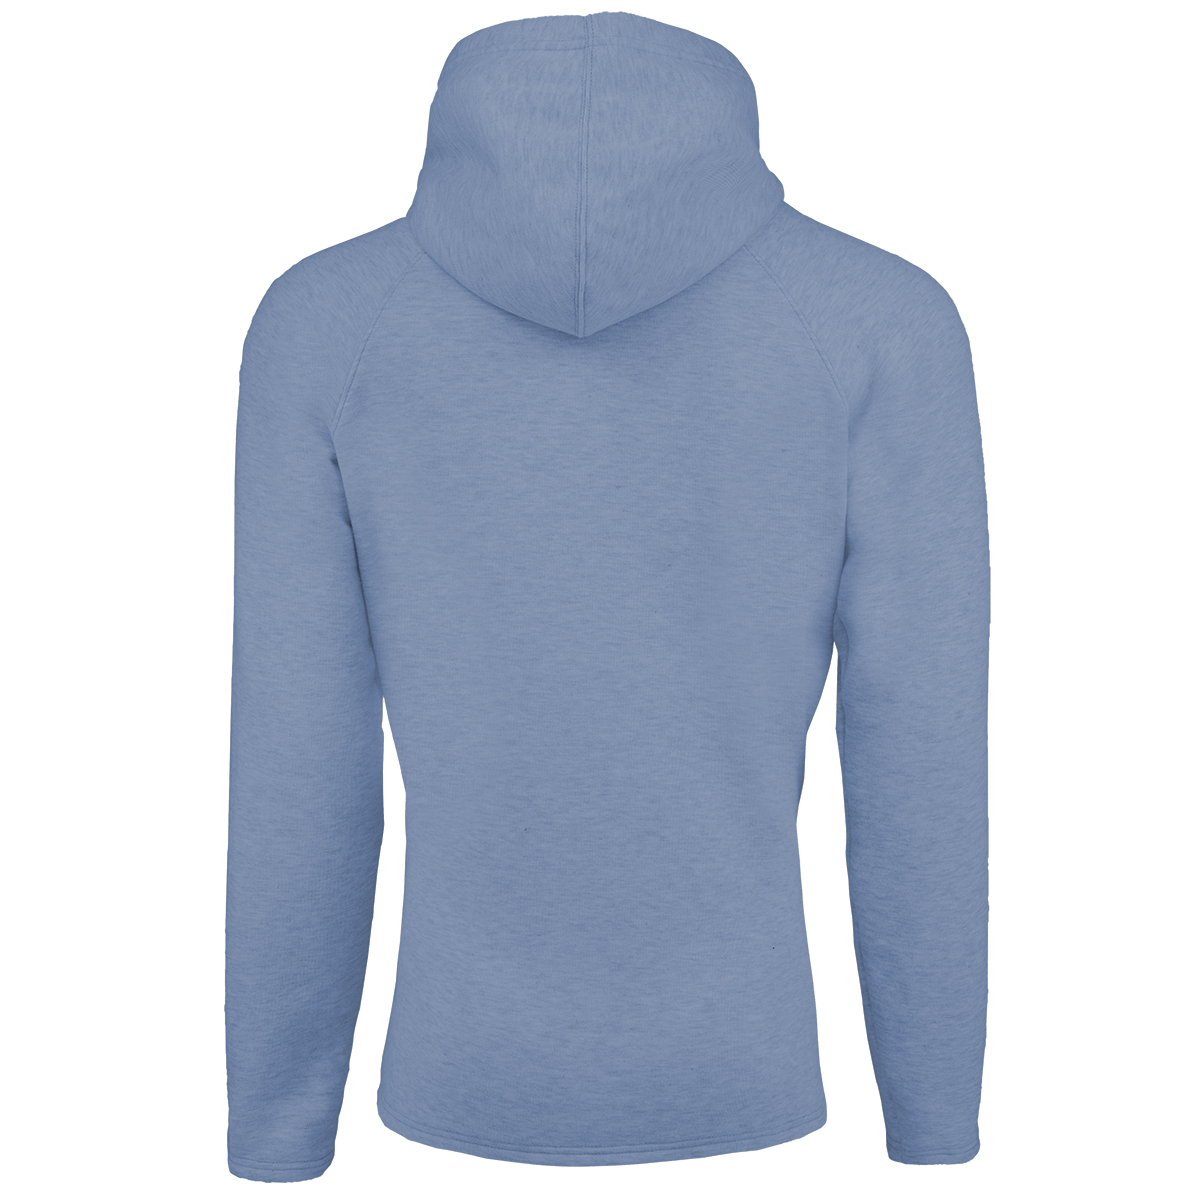 adidas-Men-039-s-Solid-Blackbird-Hooded-Sweatshirt thumbnail 15